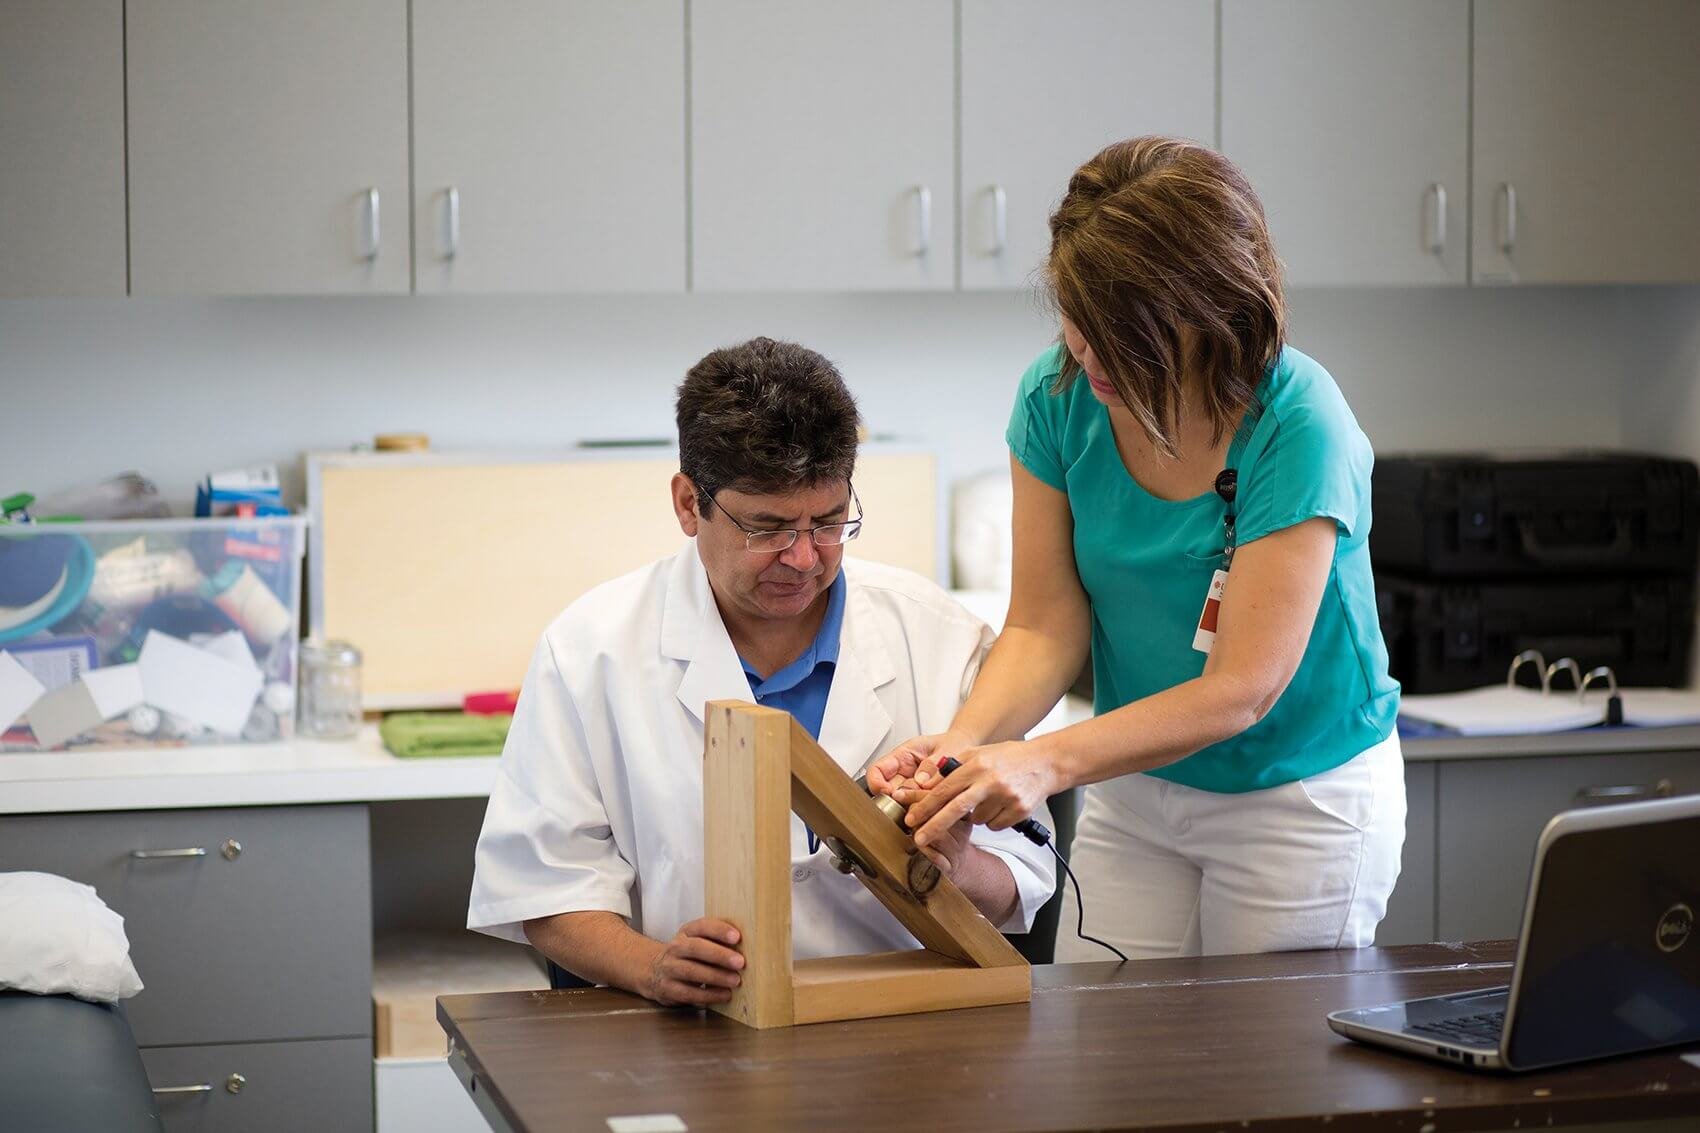 Physical therapist Nuray Yozbatiran, Ph.D., works with patient and stroke survivor Paul Kelly on improving function and control in his left hand as part of a clinical trial.